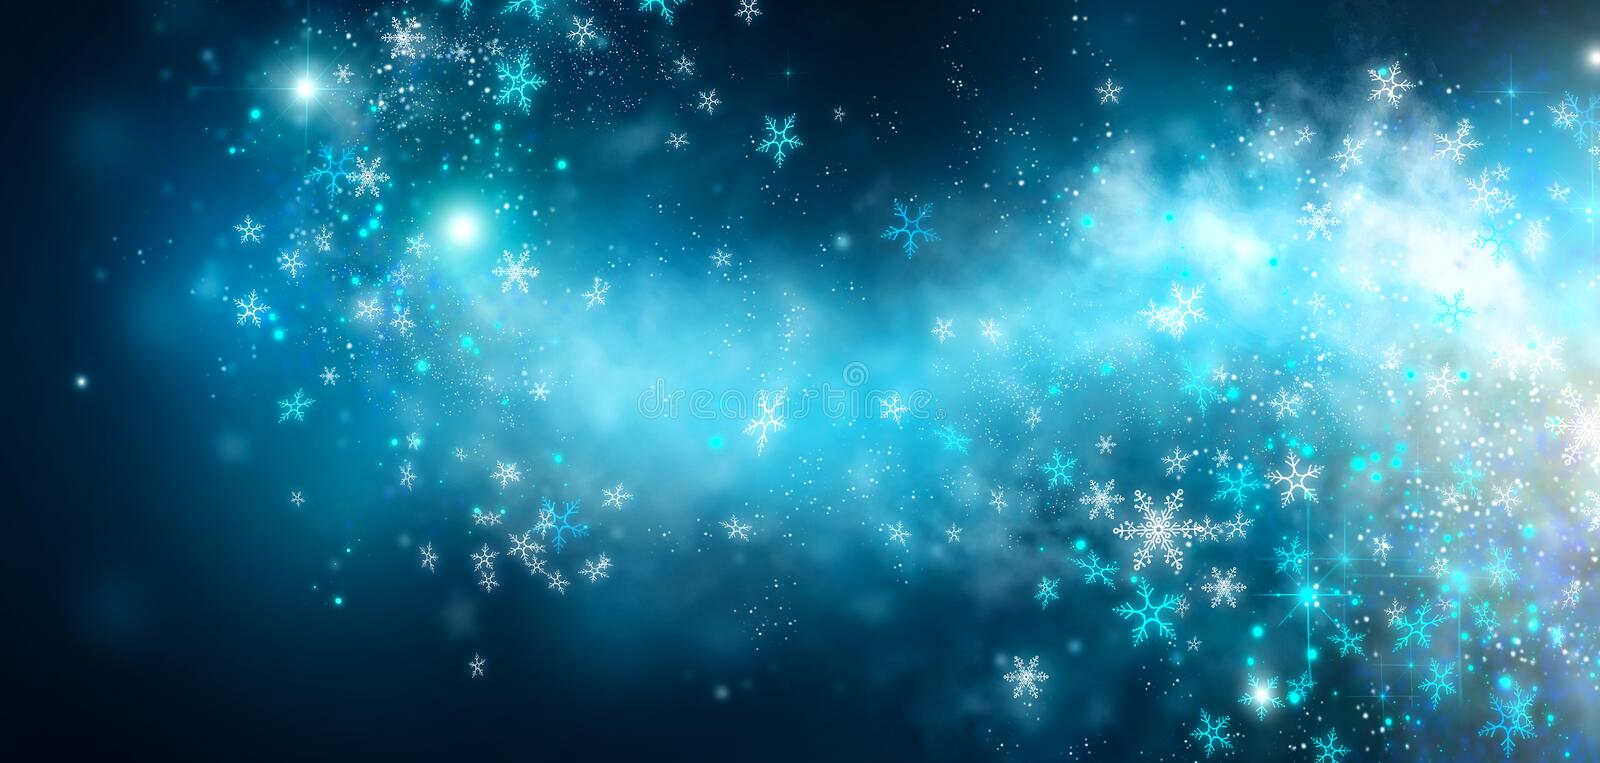 Winter Christmas and New Year glittering snow flakes swirl on black bokeh background, backdrop with sparkling blue stars. Holiday garland, magic glowing stars stock images